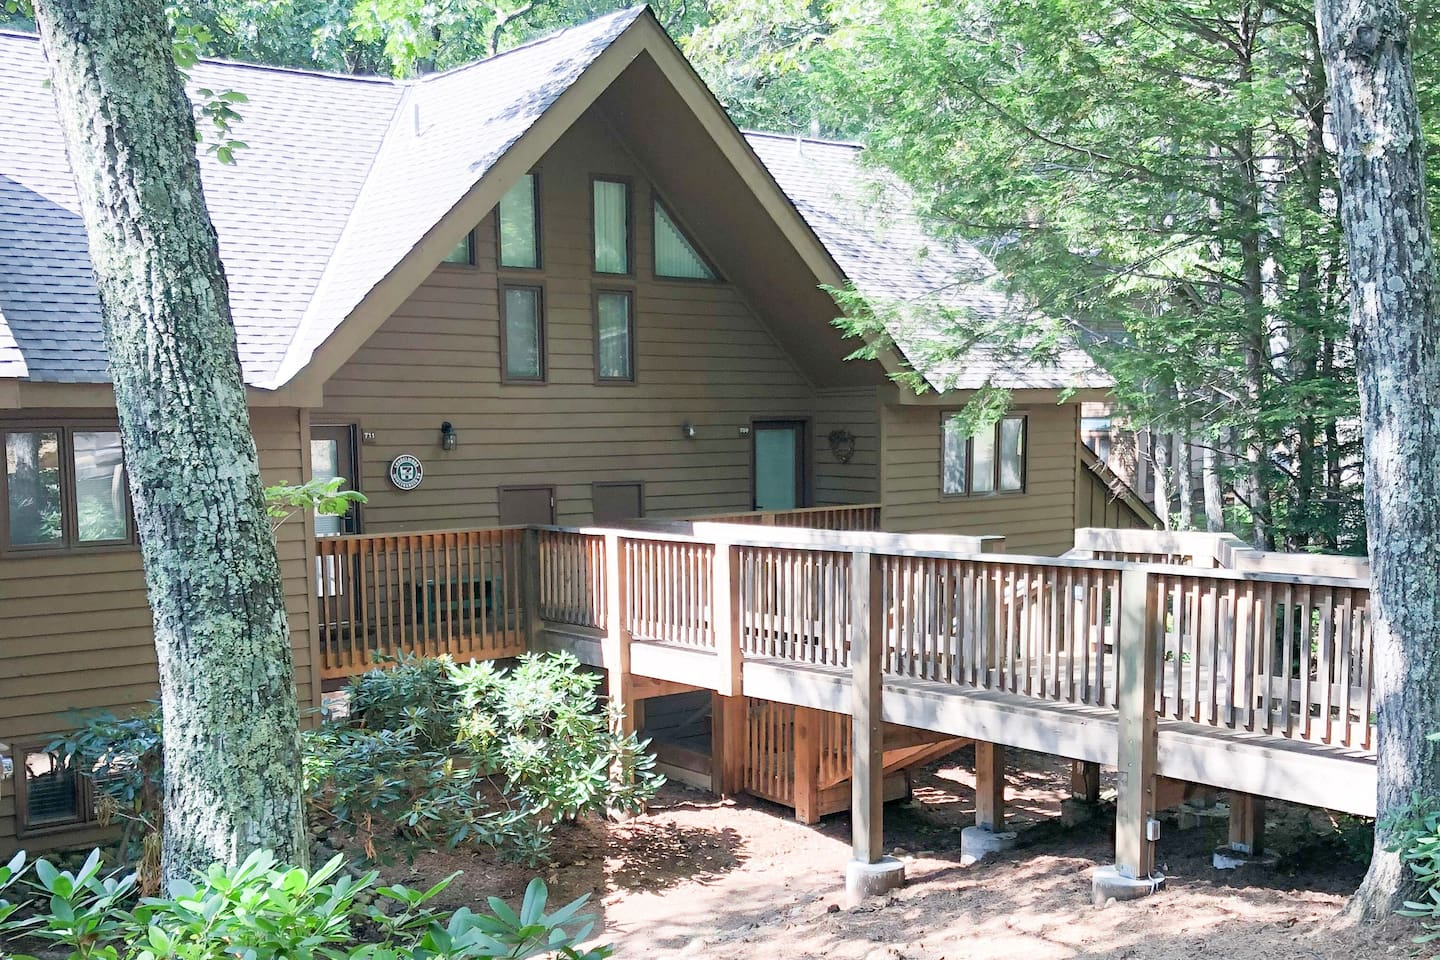 Welcome to our cozy Wintergreen Hideaway just steps away!